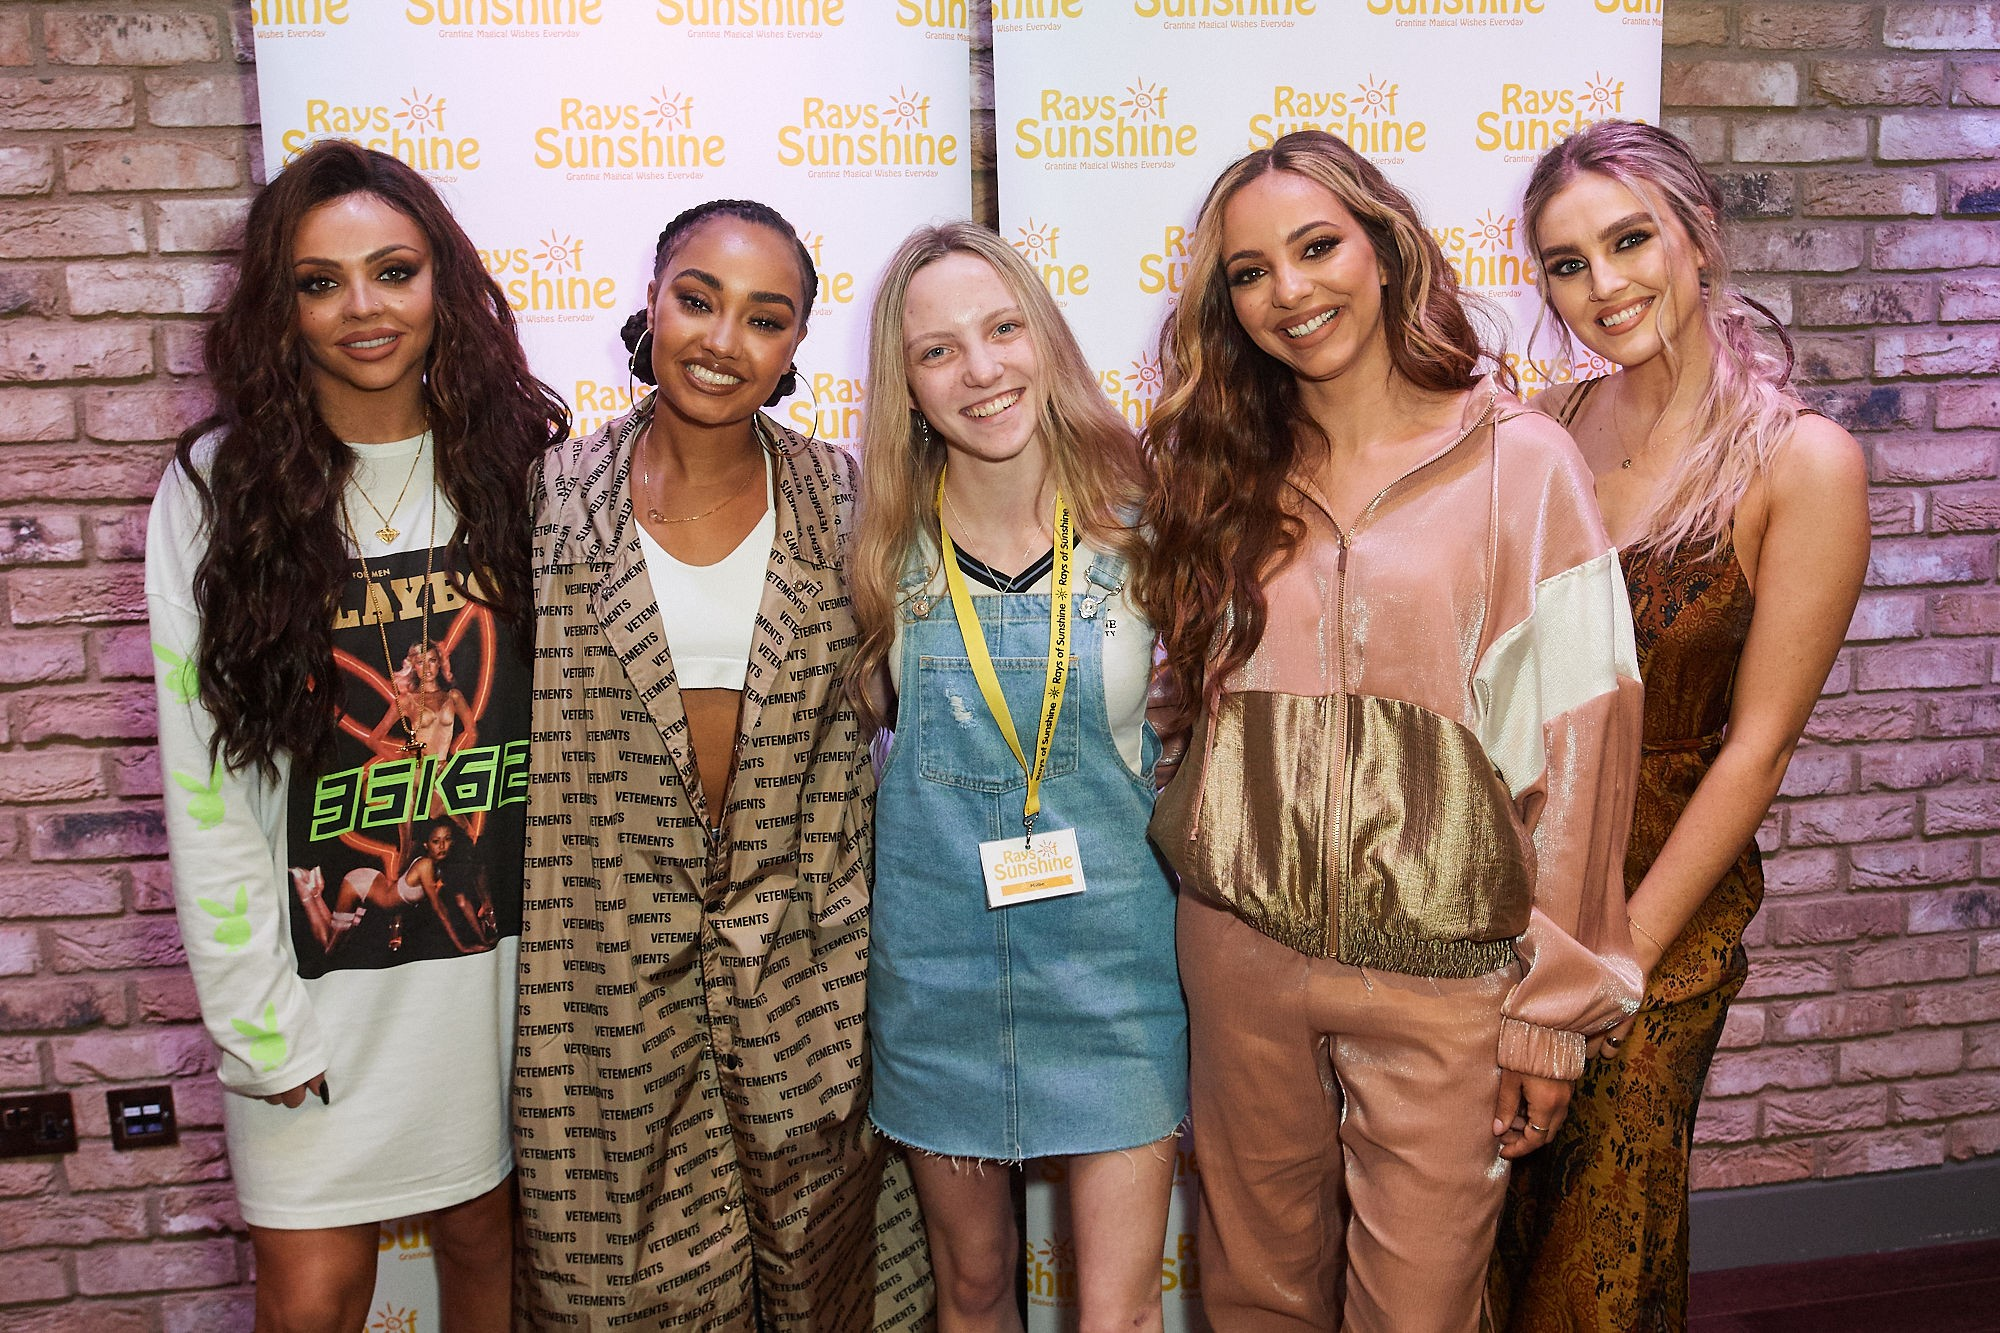 Little Mix Grant Wish for Local Teen